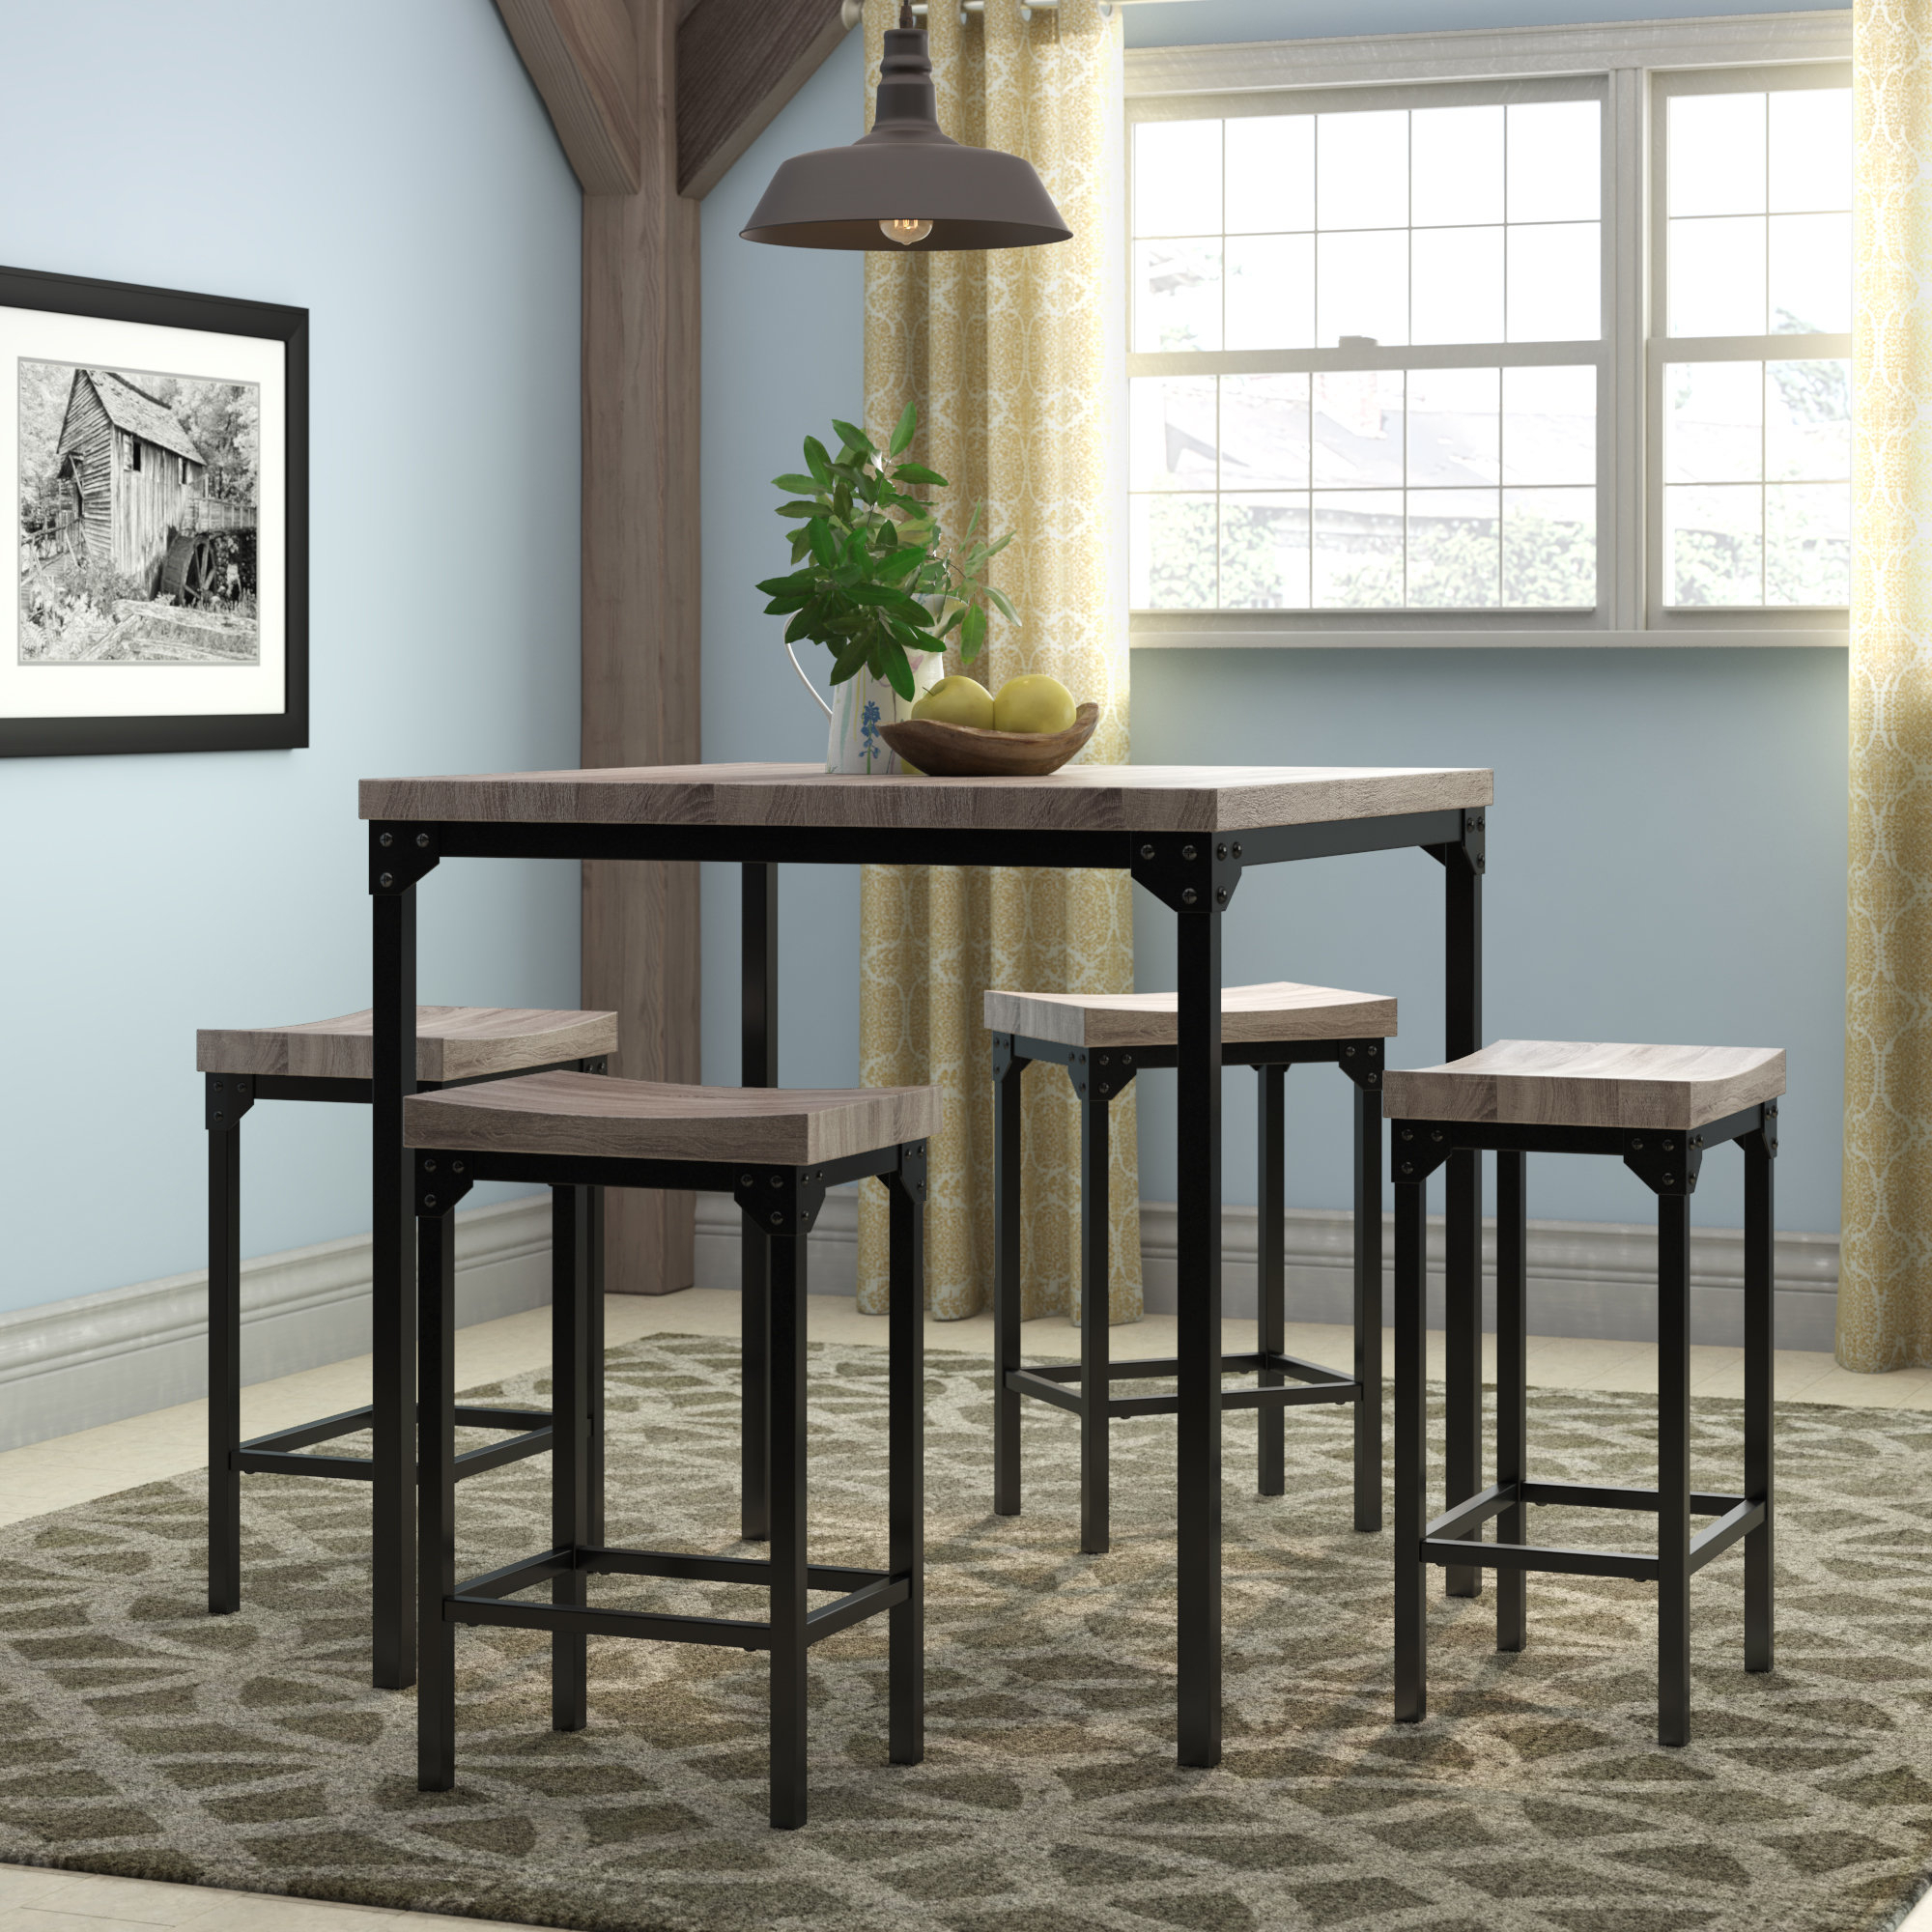 Gracie Oaks Wegner 5 Piece Counter Height Dining Set & Reviews Within Current Kerley 4 Piece Dining Sets (View 9 of 25)